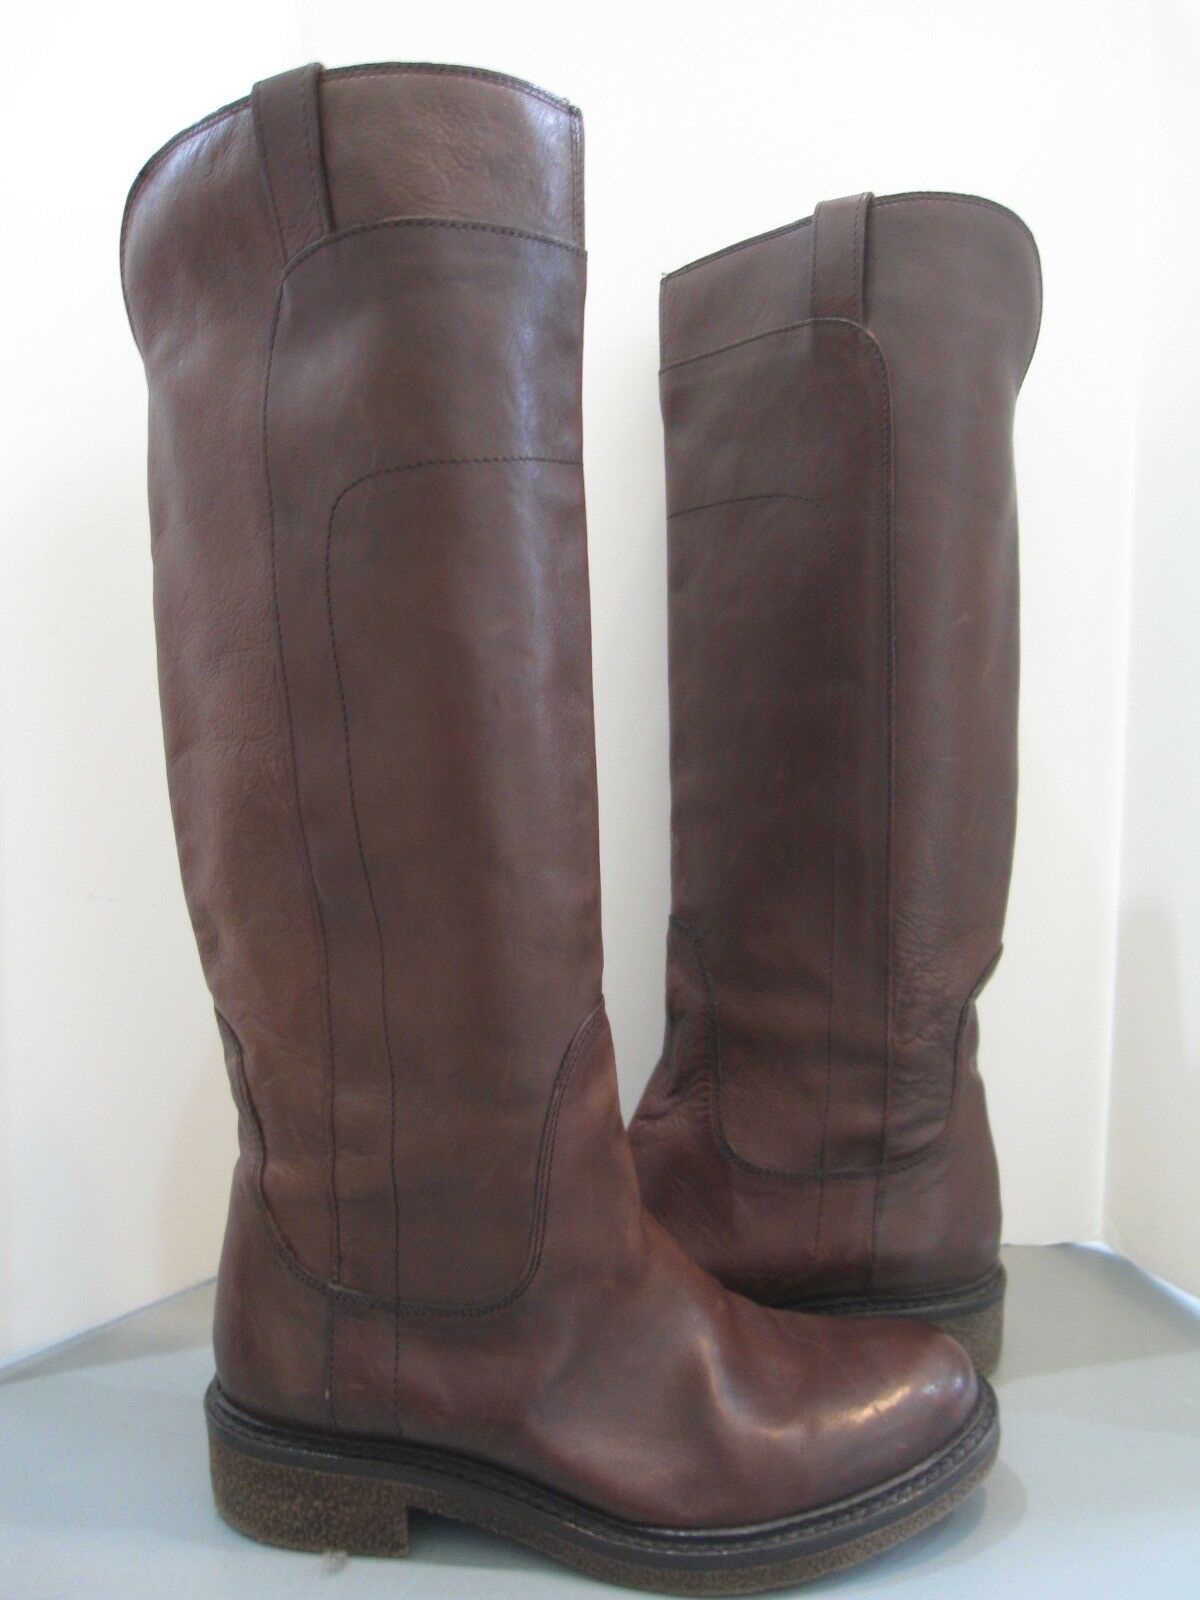 BOEMOS Tall Sleek Rich Brown Boots Sz 37 US 6.5 Made in  Career Casual SALE